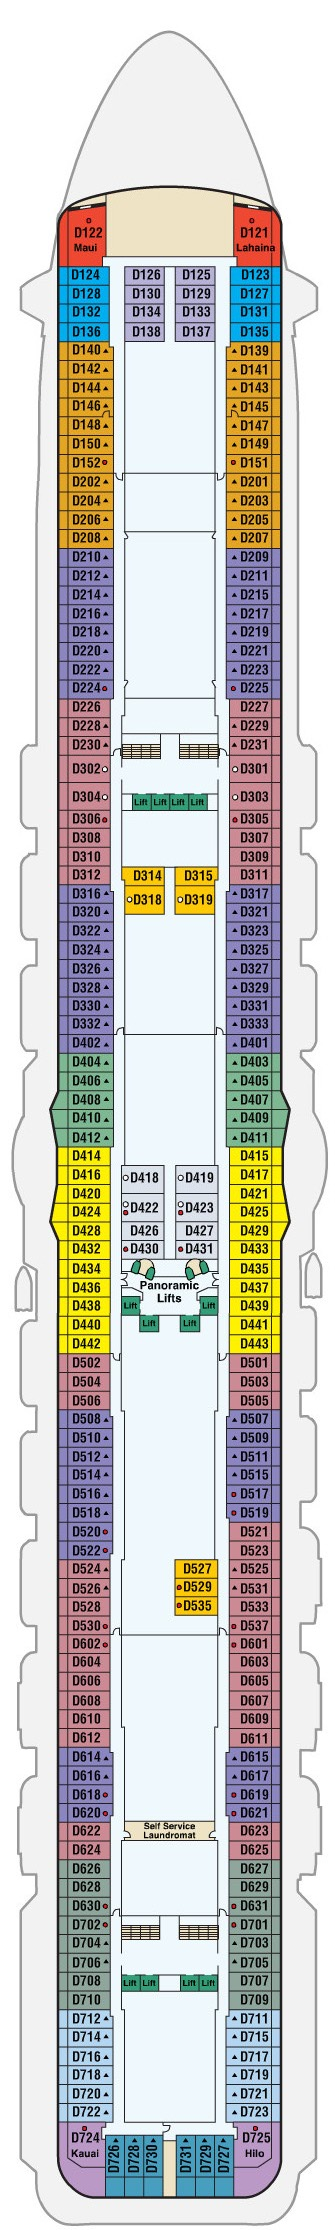 Regal Princess Deck 9 - Dolphin layout